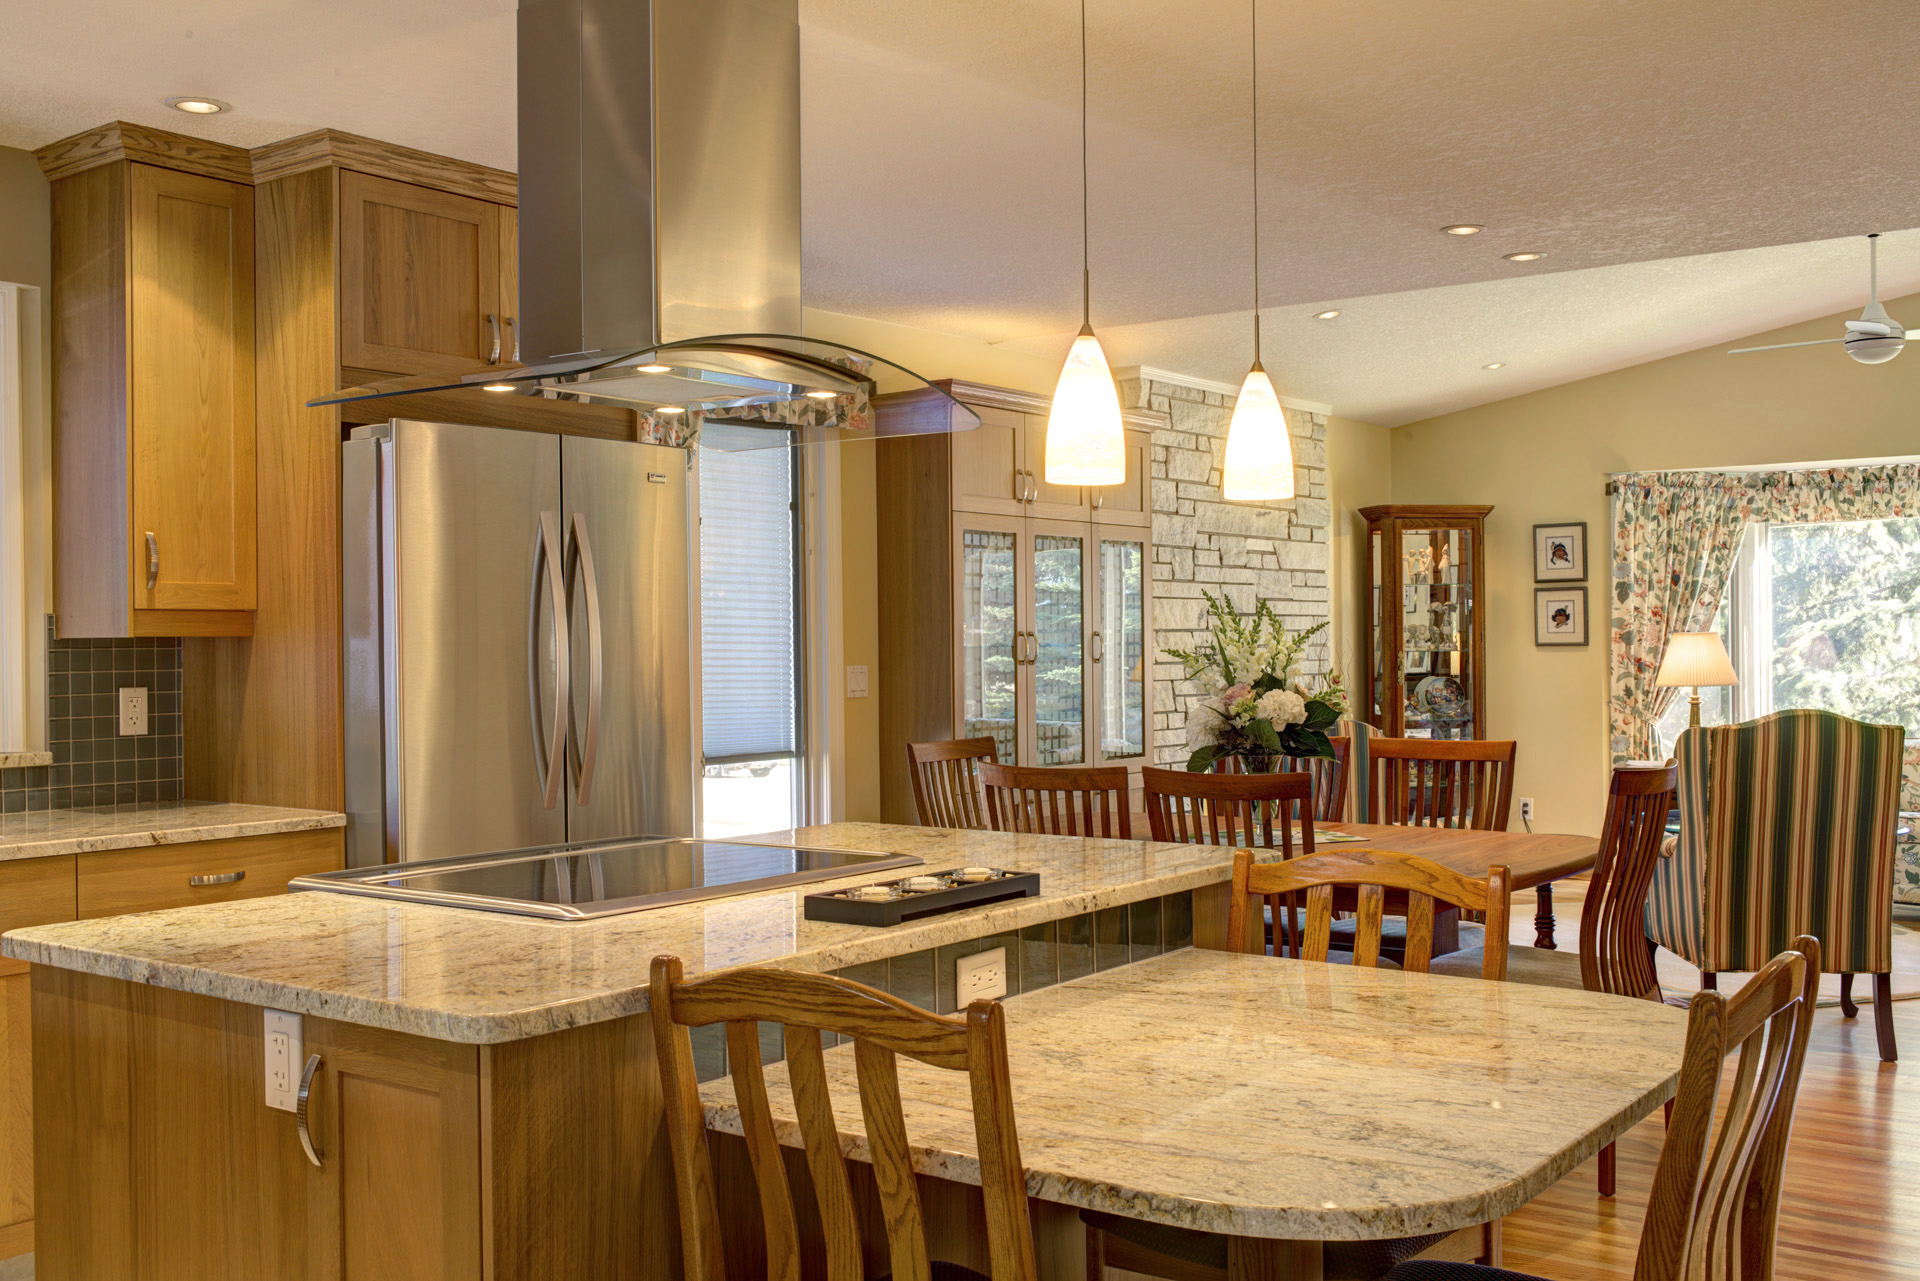 kitchen and home contractors calgary